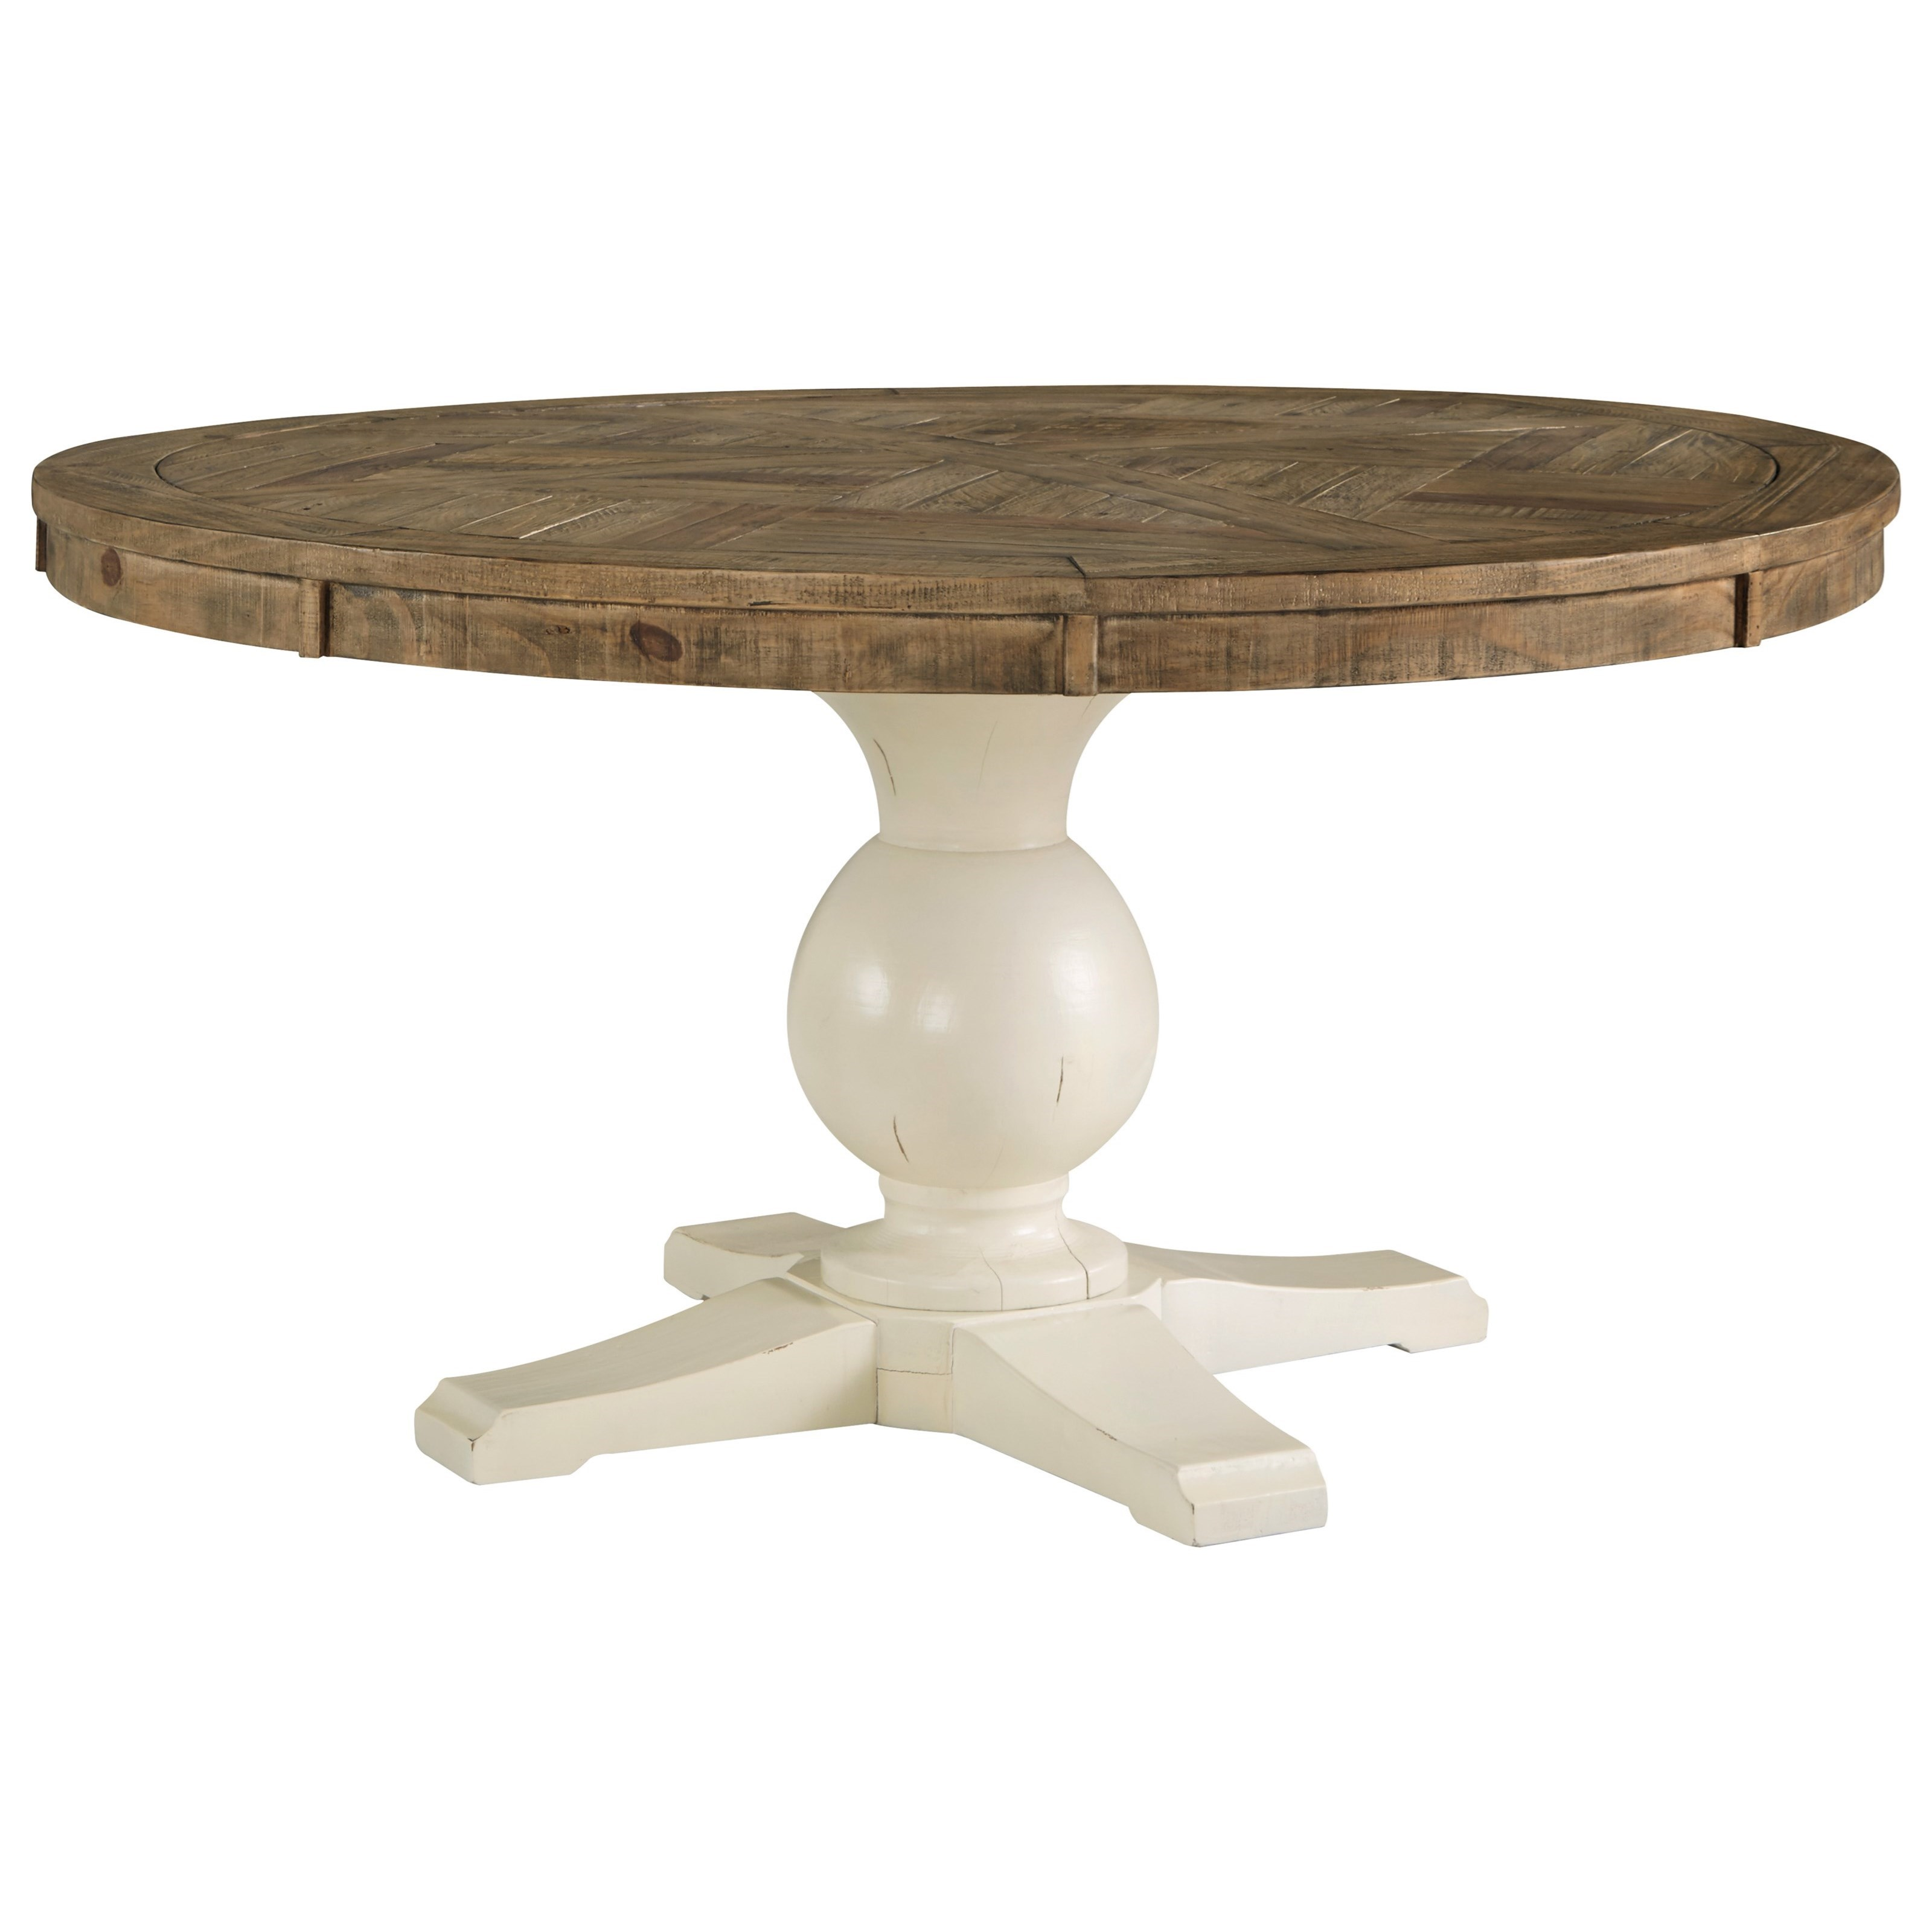 Grindleburg Round Dining Room Table by Signature Design by Ashley at Value City Furniture